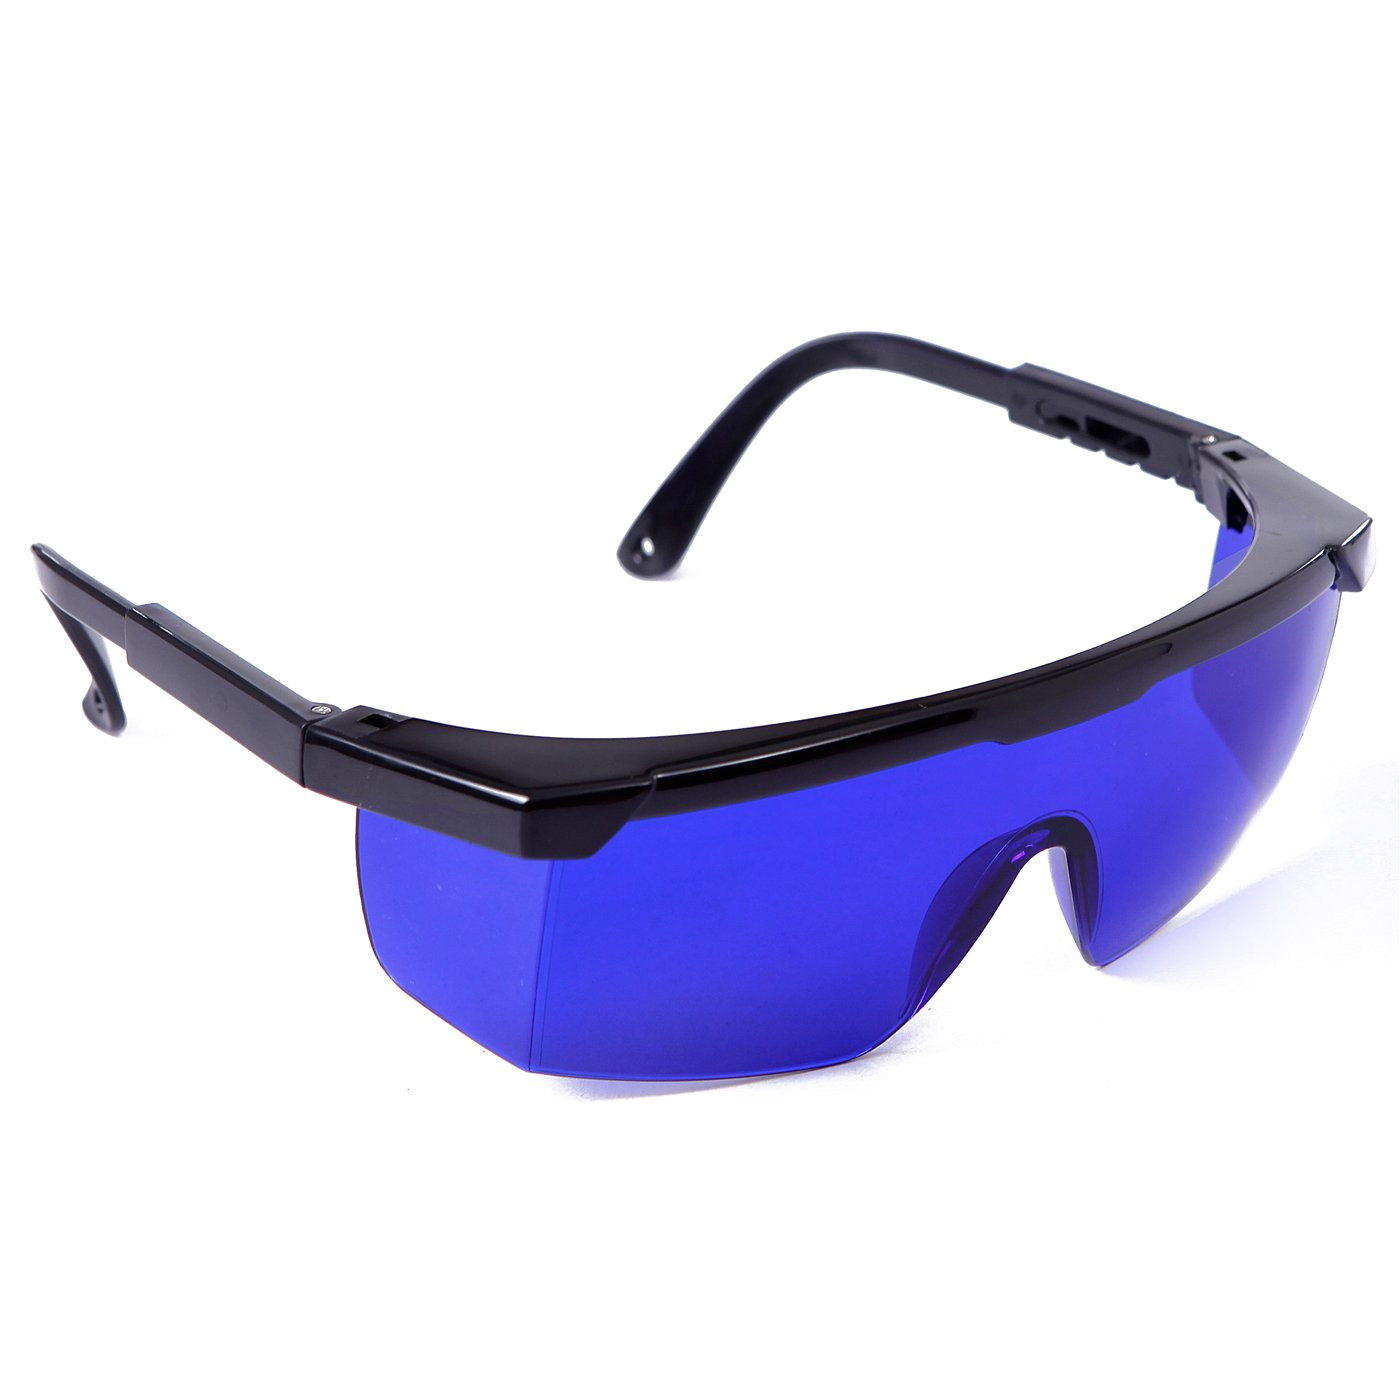 hde laser eye protection safety glasses for red and uv lasers with case blue amazon com